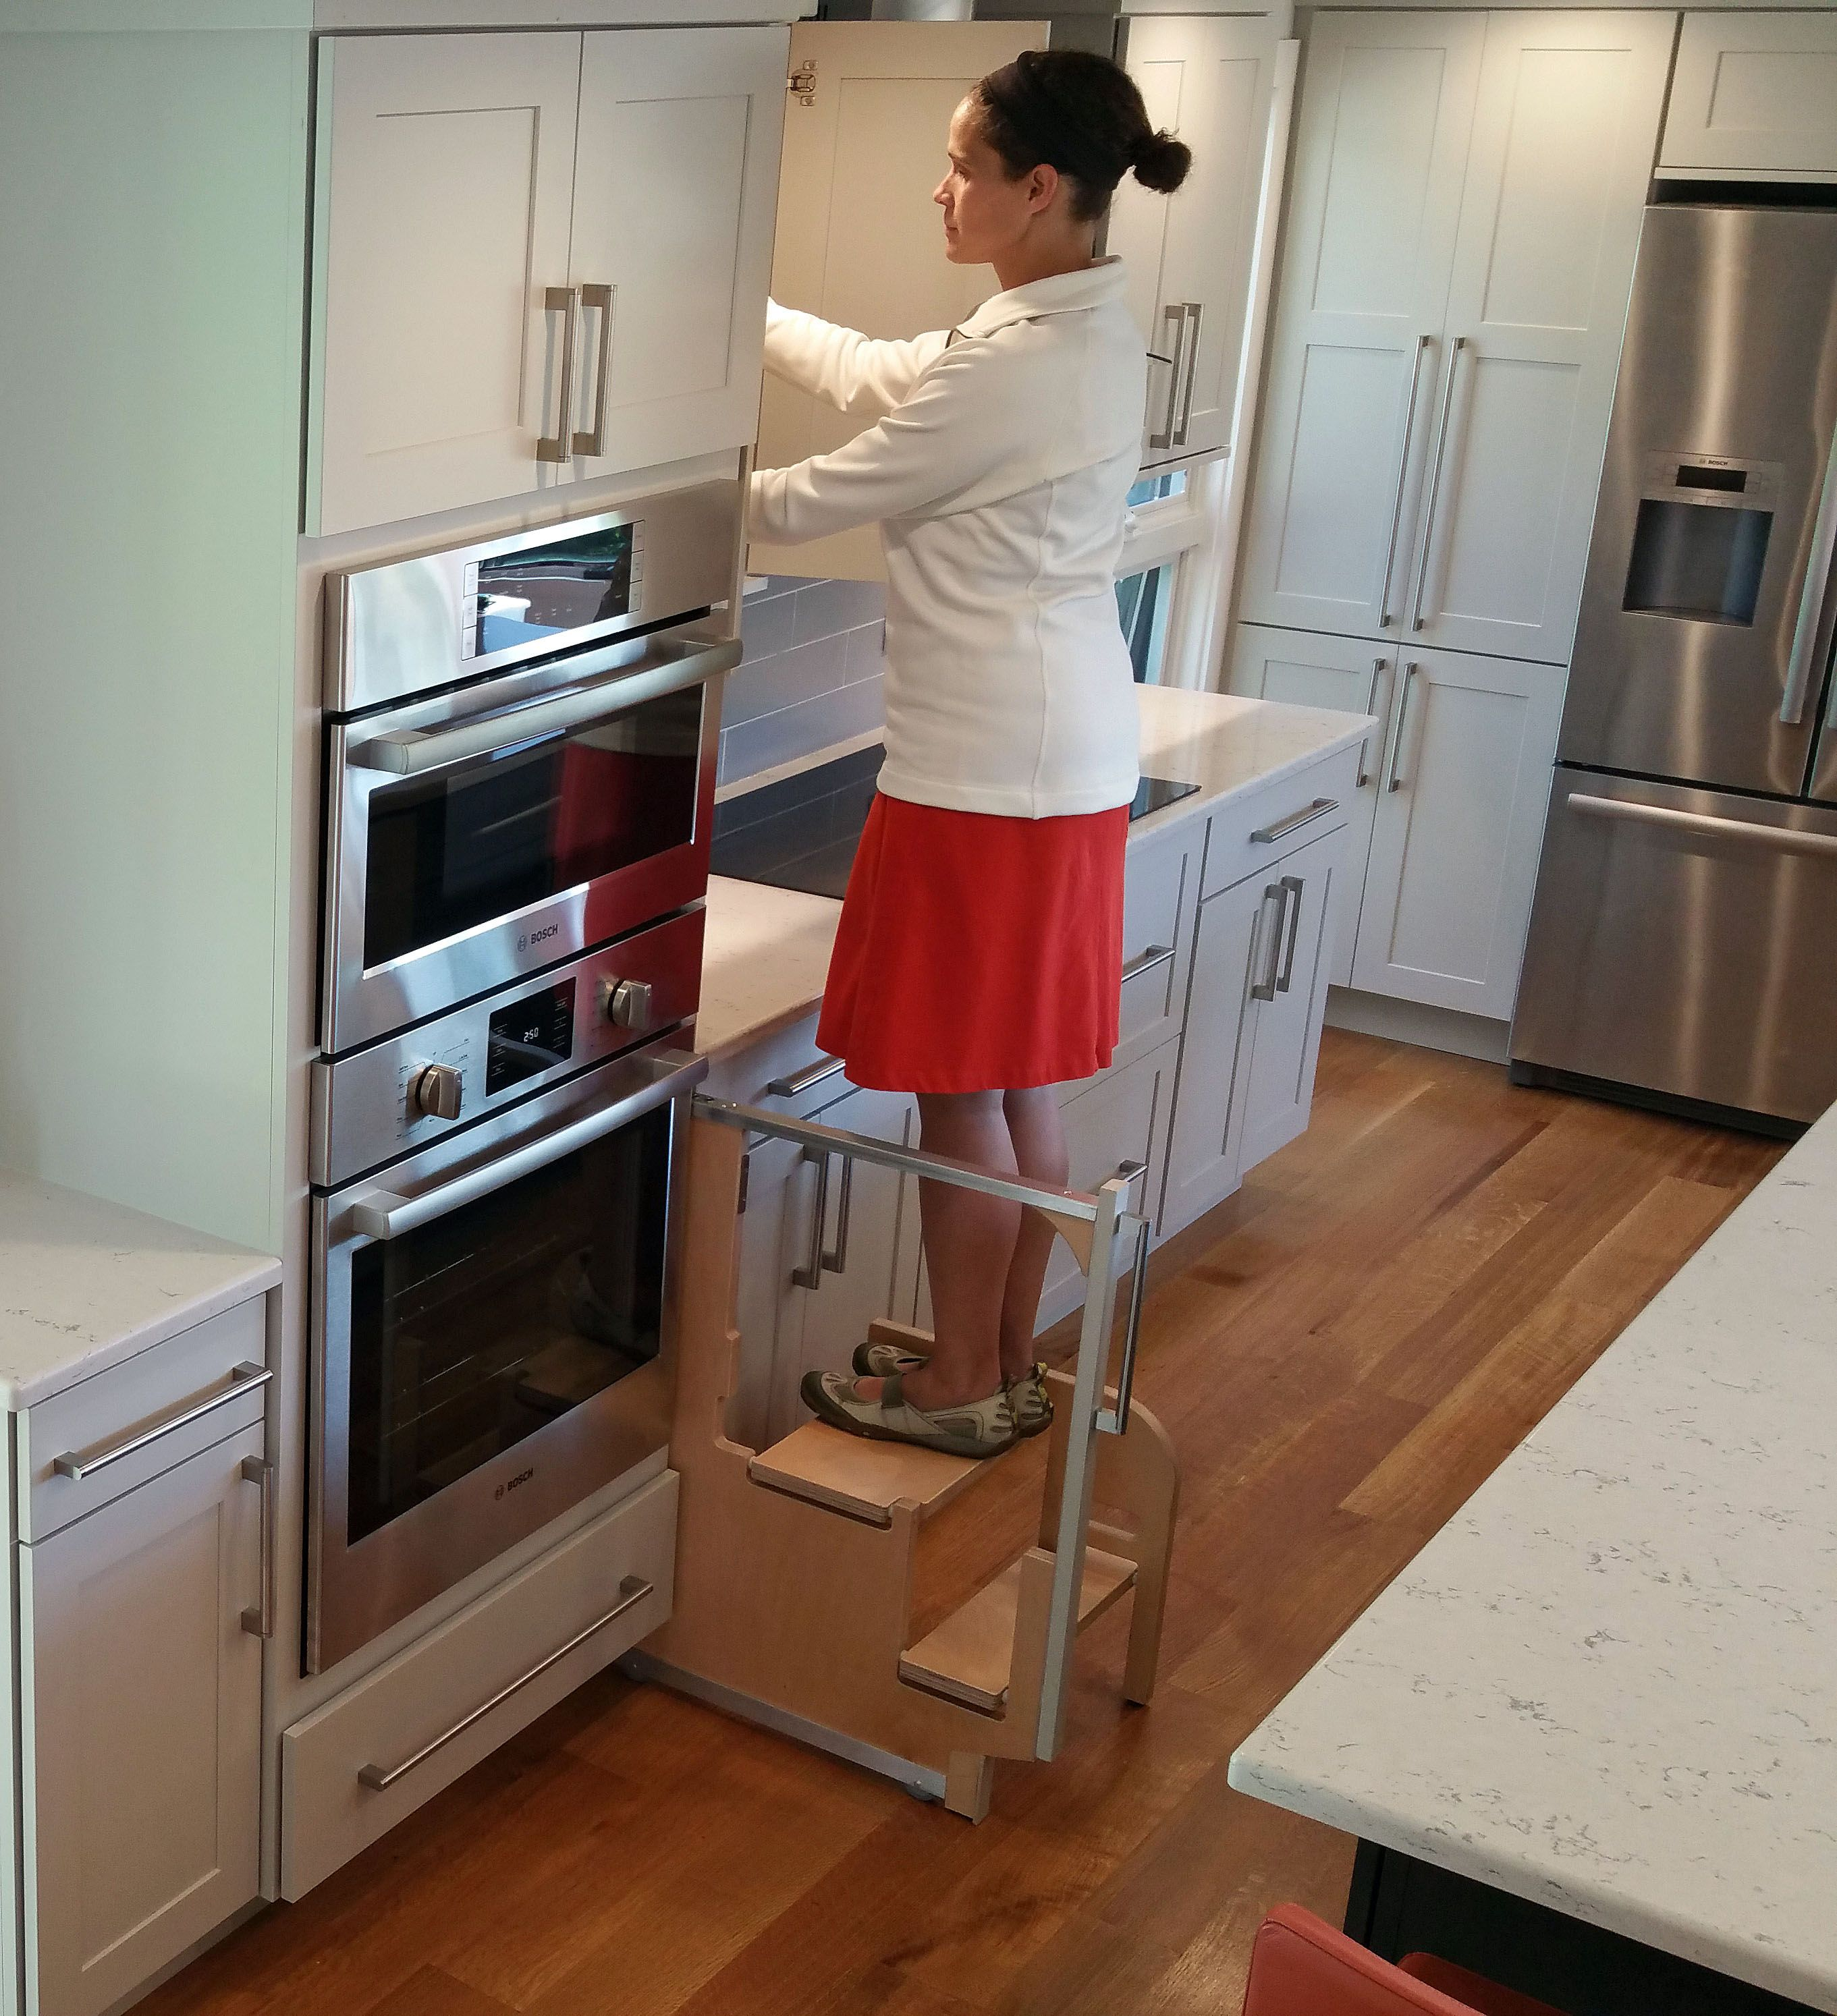 Kitchen Decor Ladder The Step 180 Cabinet Step Stool Remains Hidden Until You